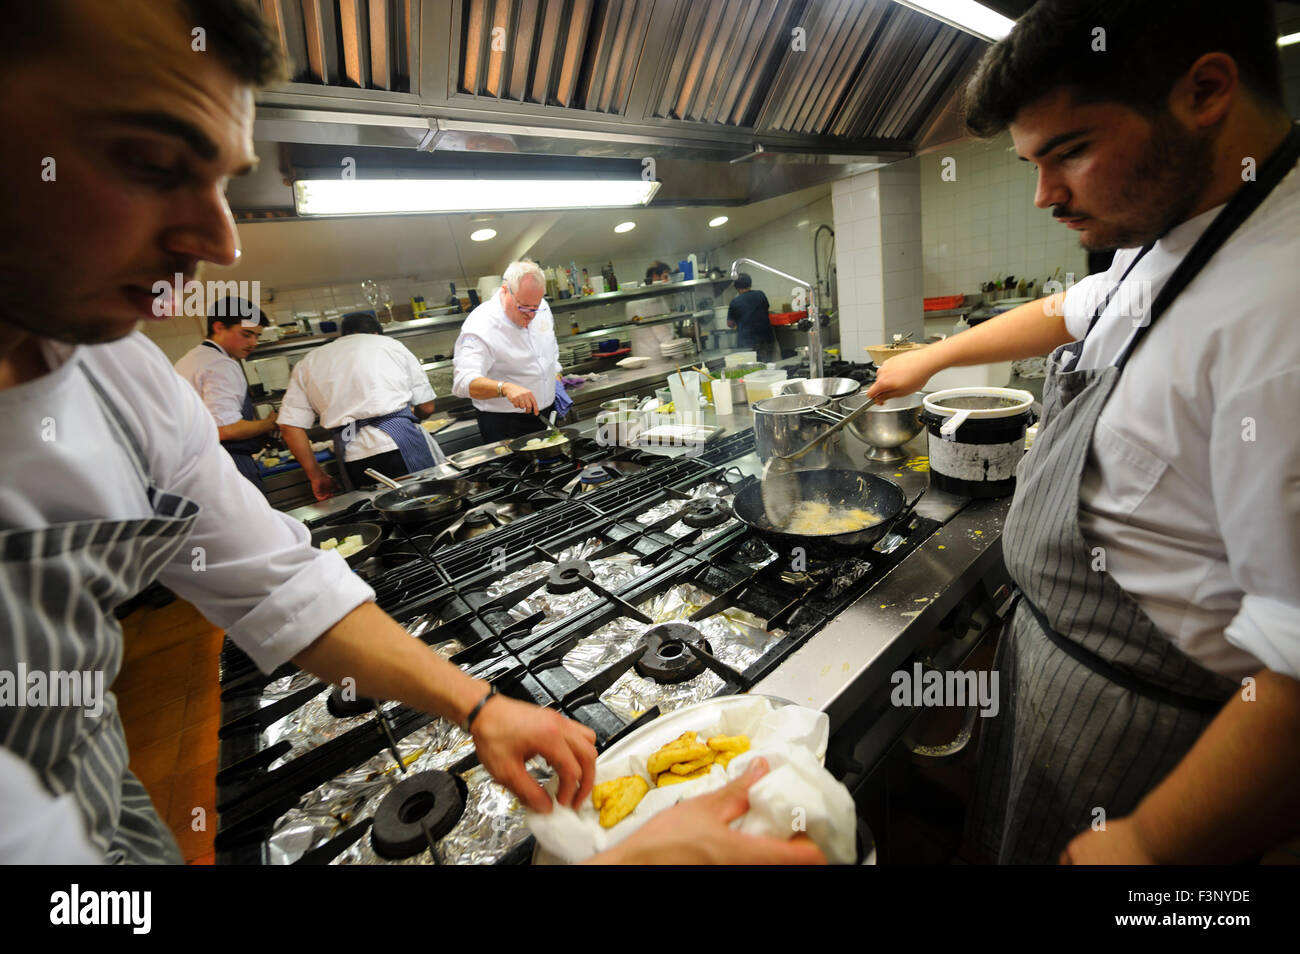 busy restaurant kitchen. Cooks Frying Fish On A Professional Restaurant Kitchen - Stock Image Busy